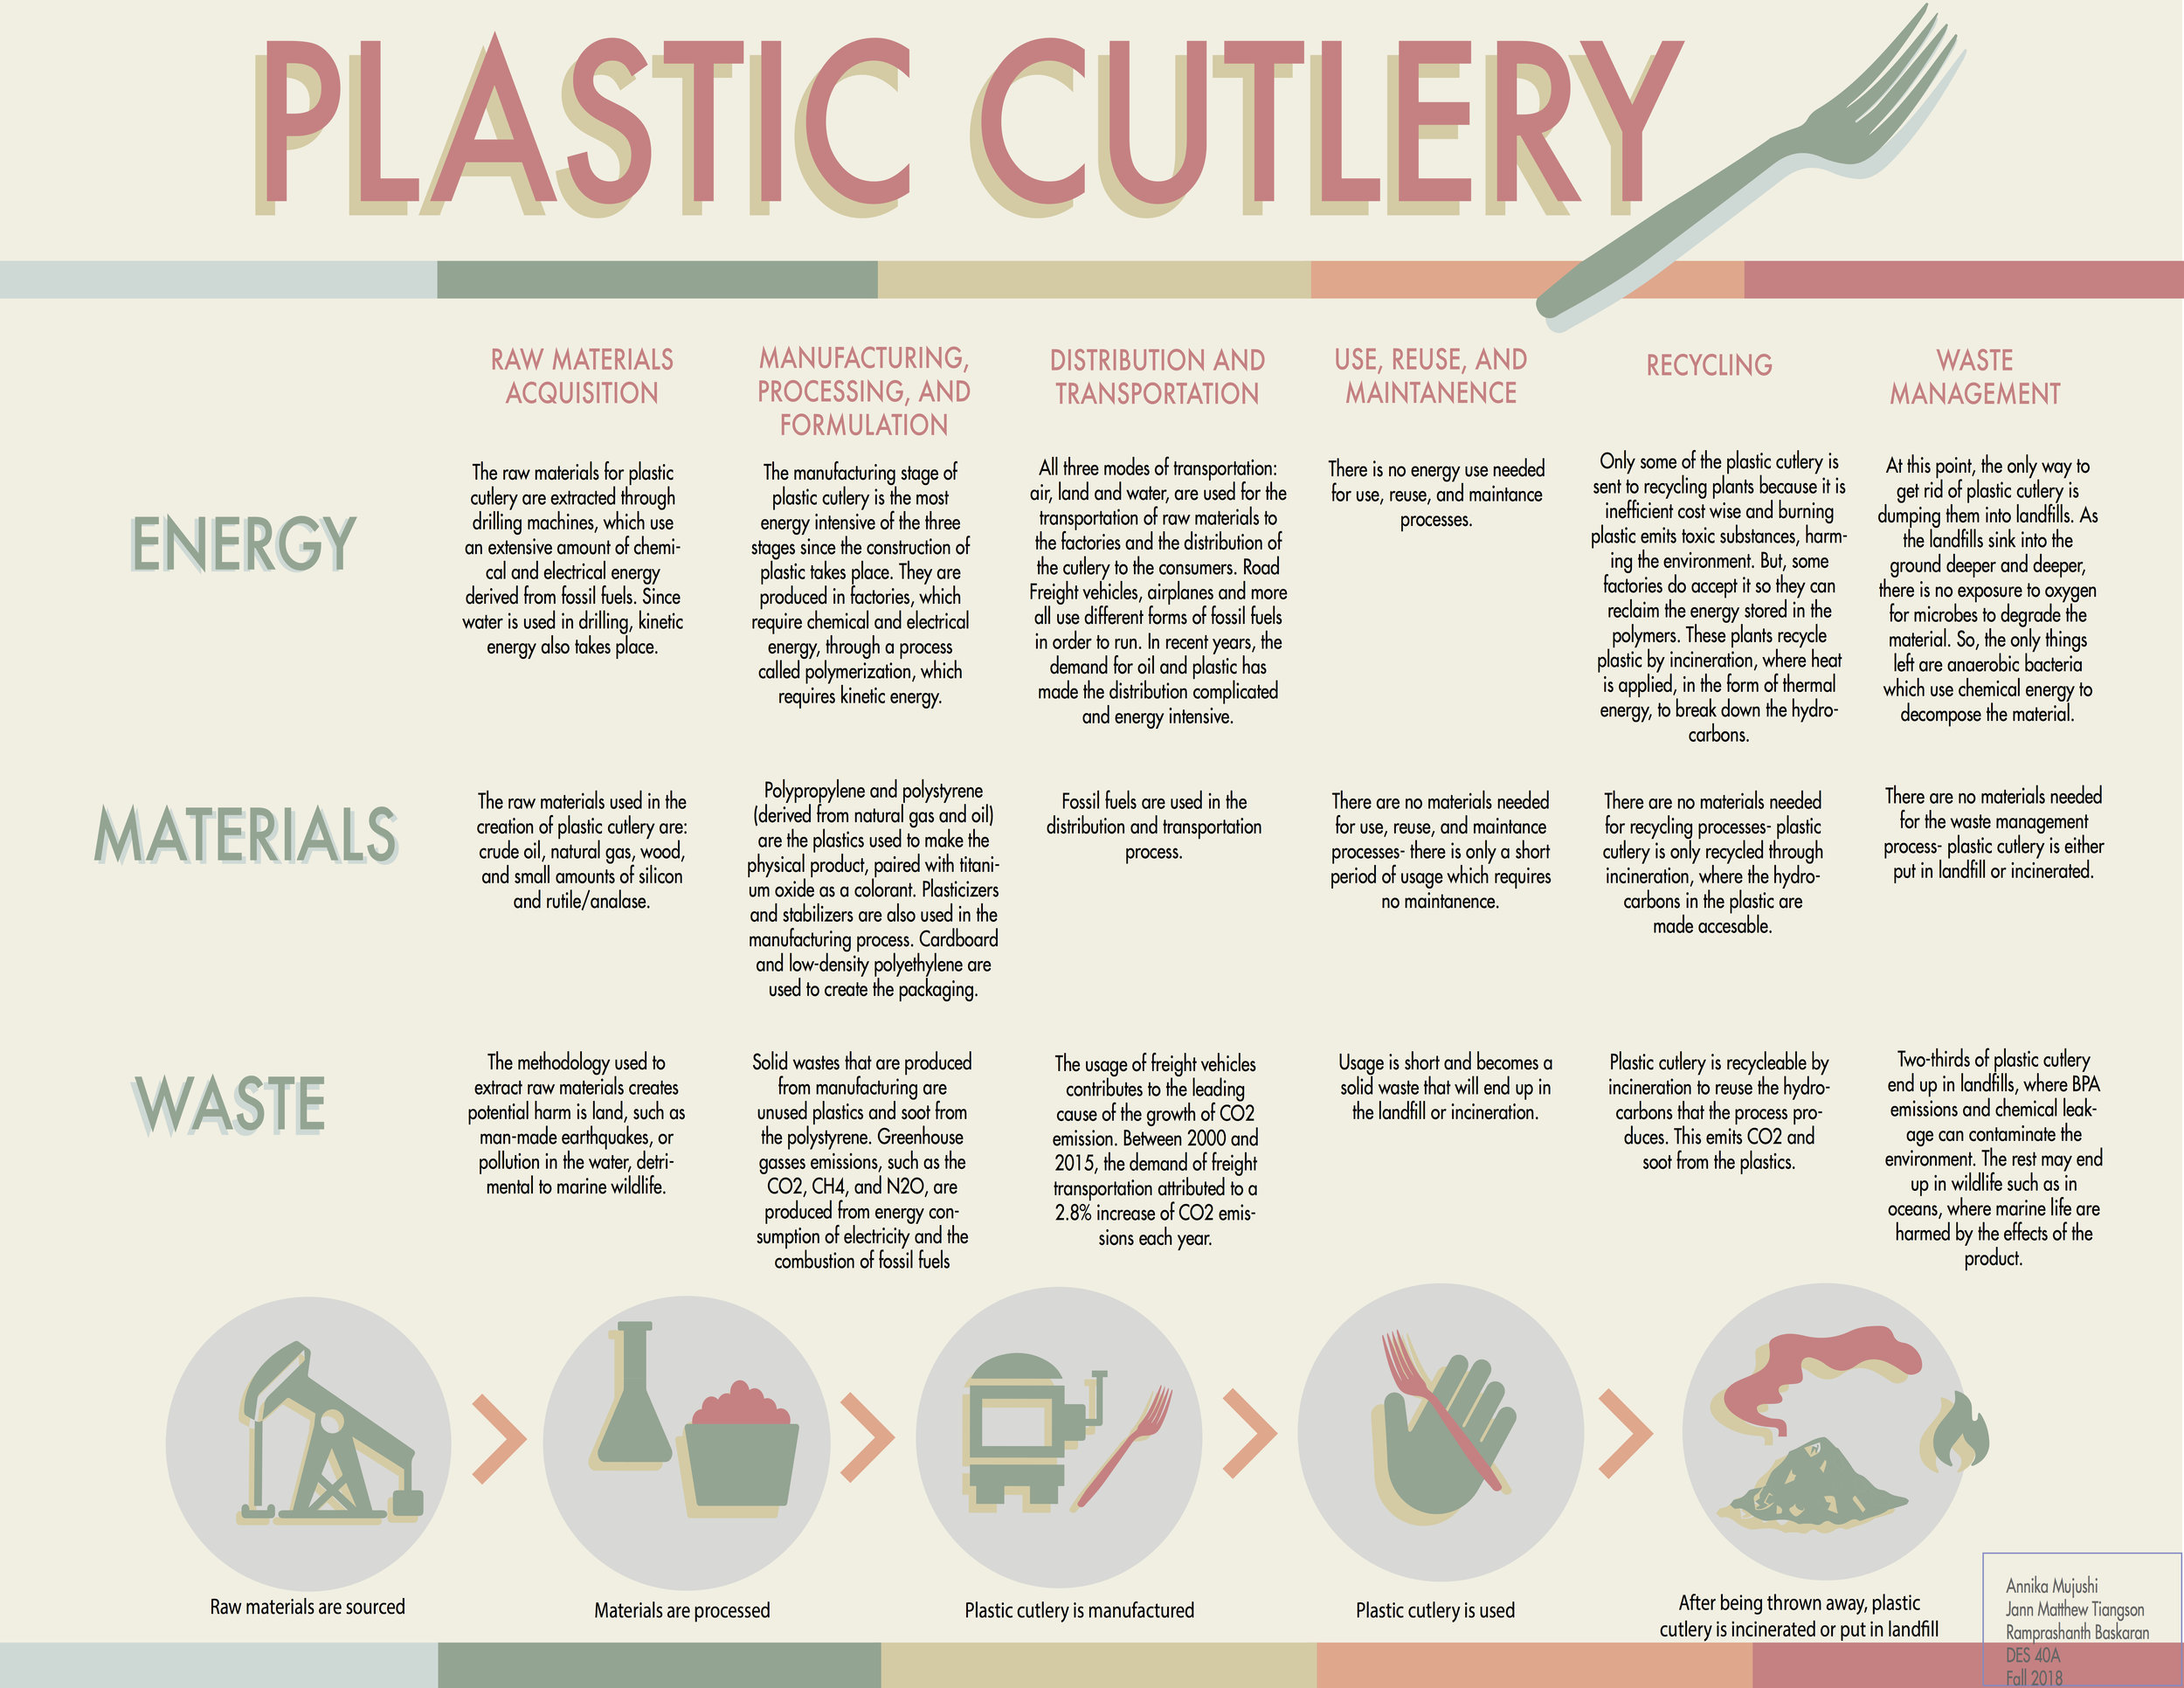 Life Cycle of Plastic Cutlery